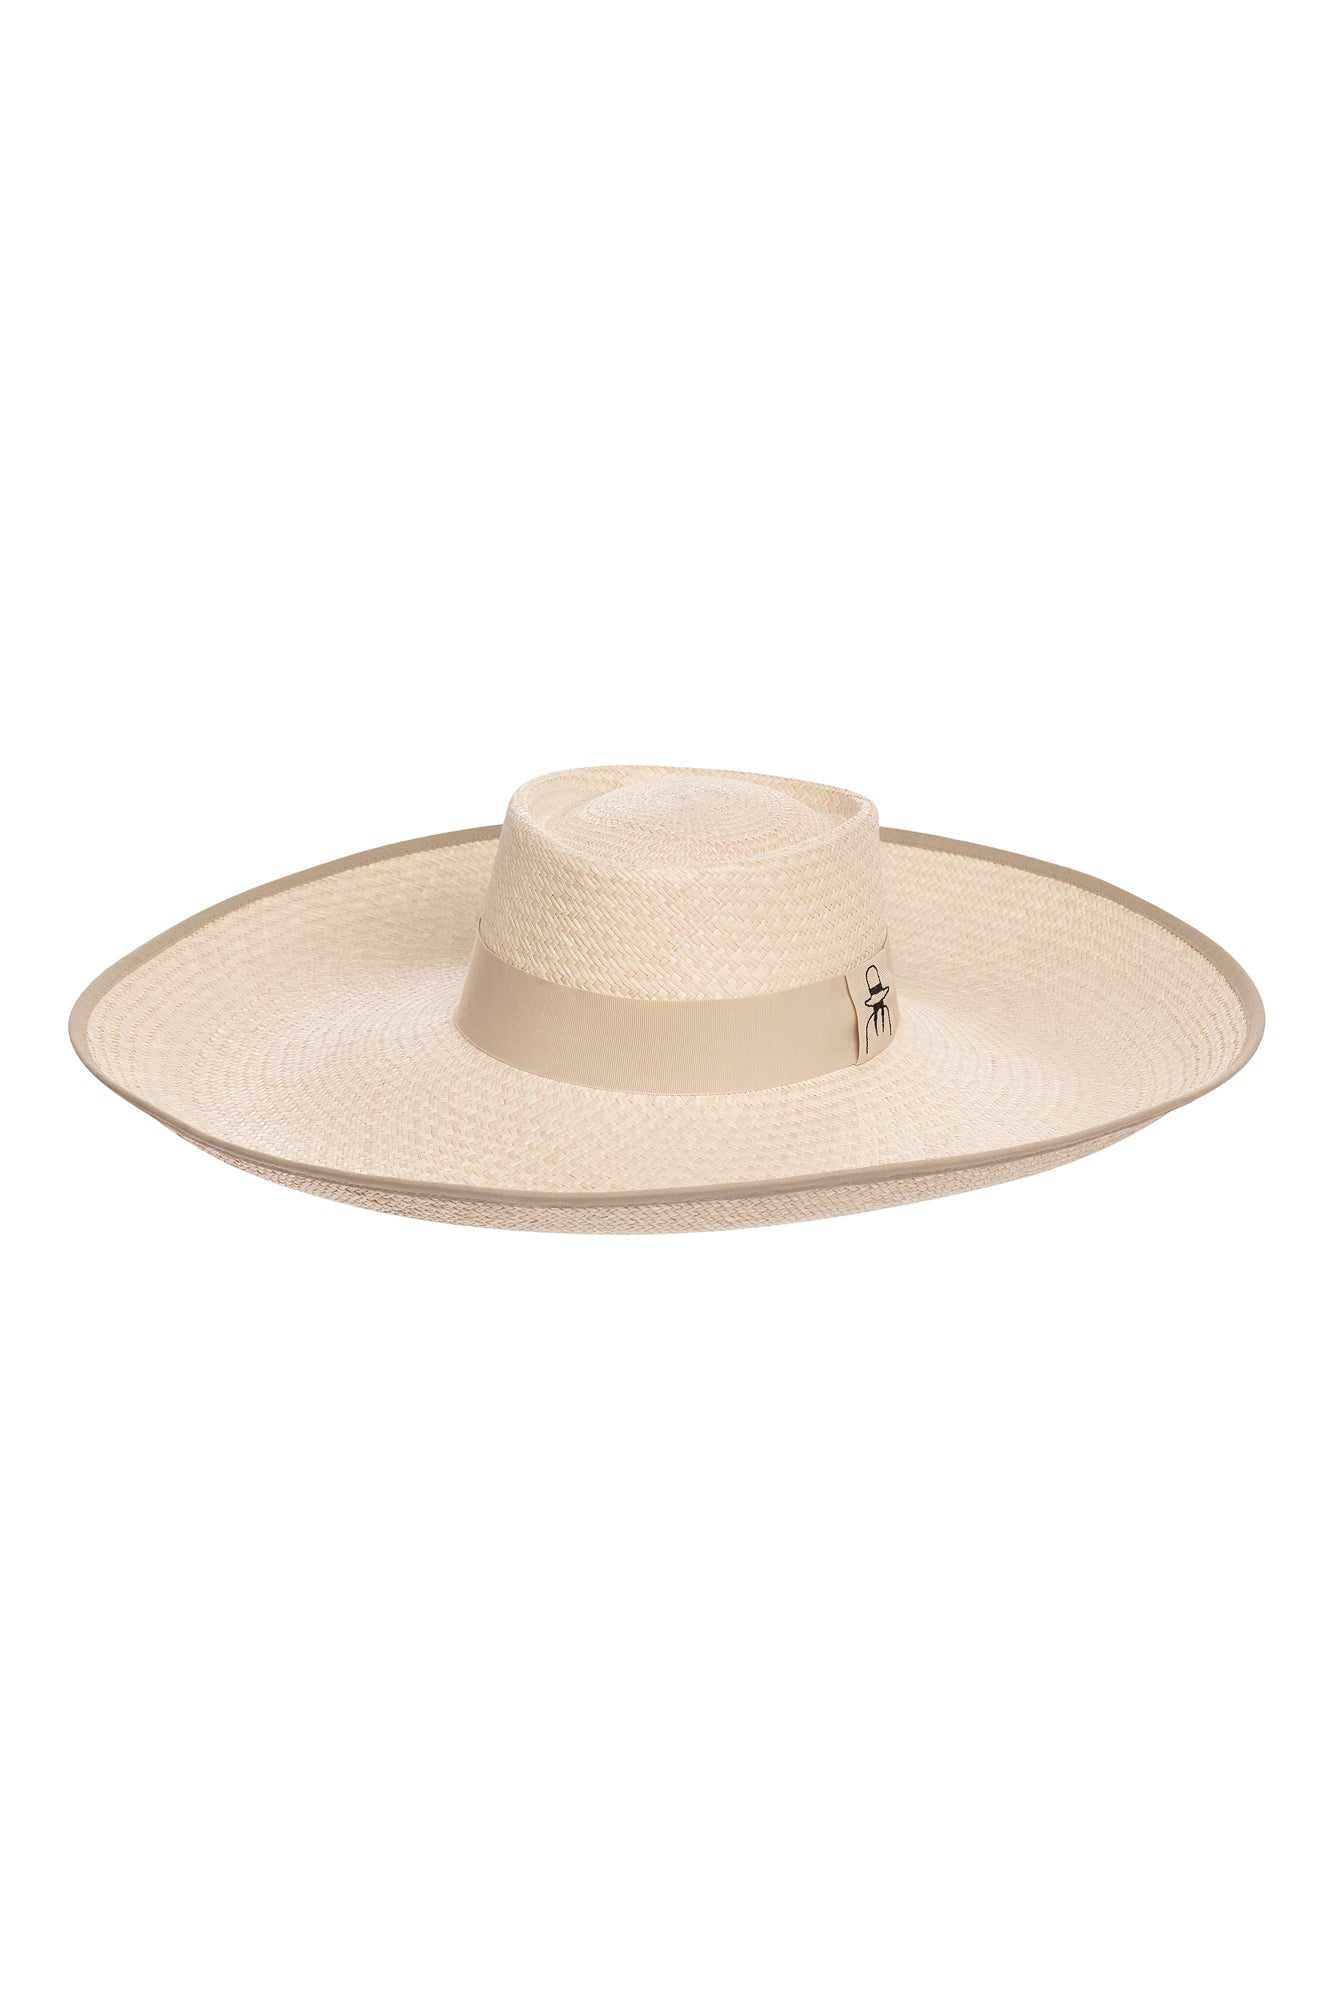 Carolina K Resort Cielo Hat in Natural